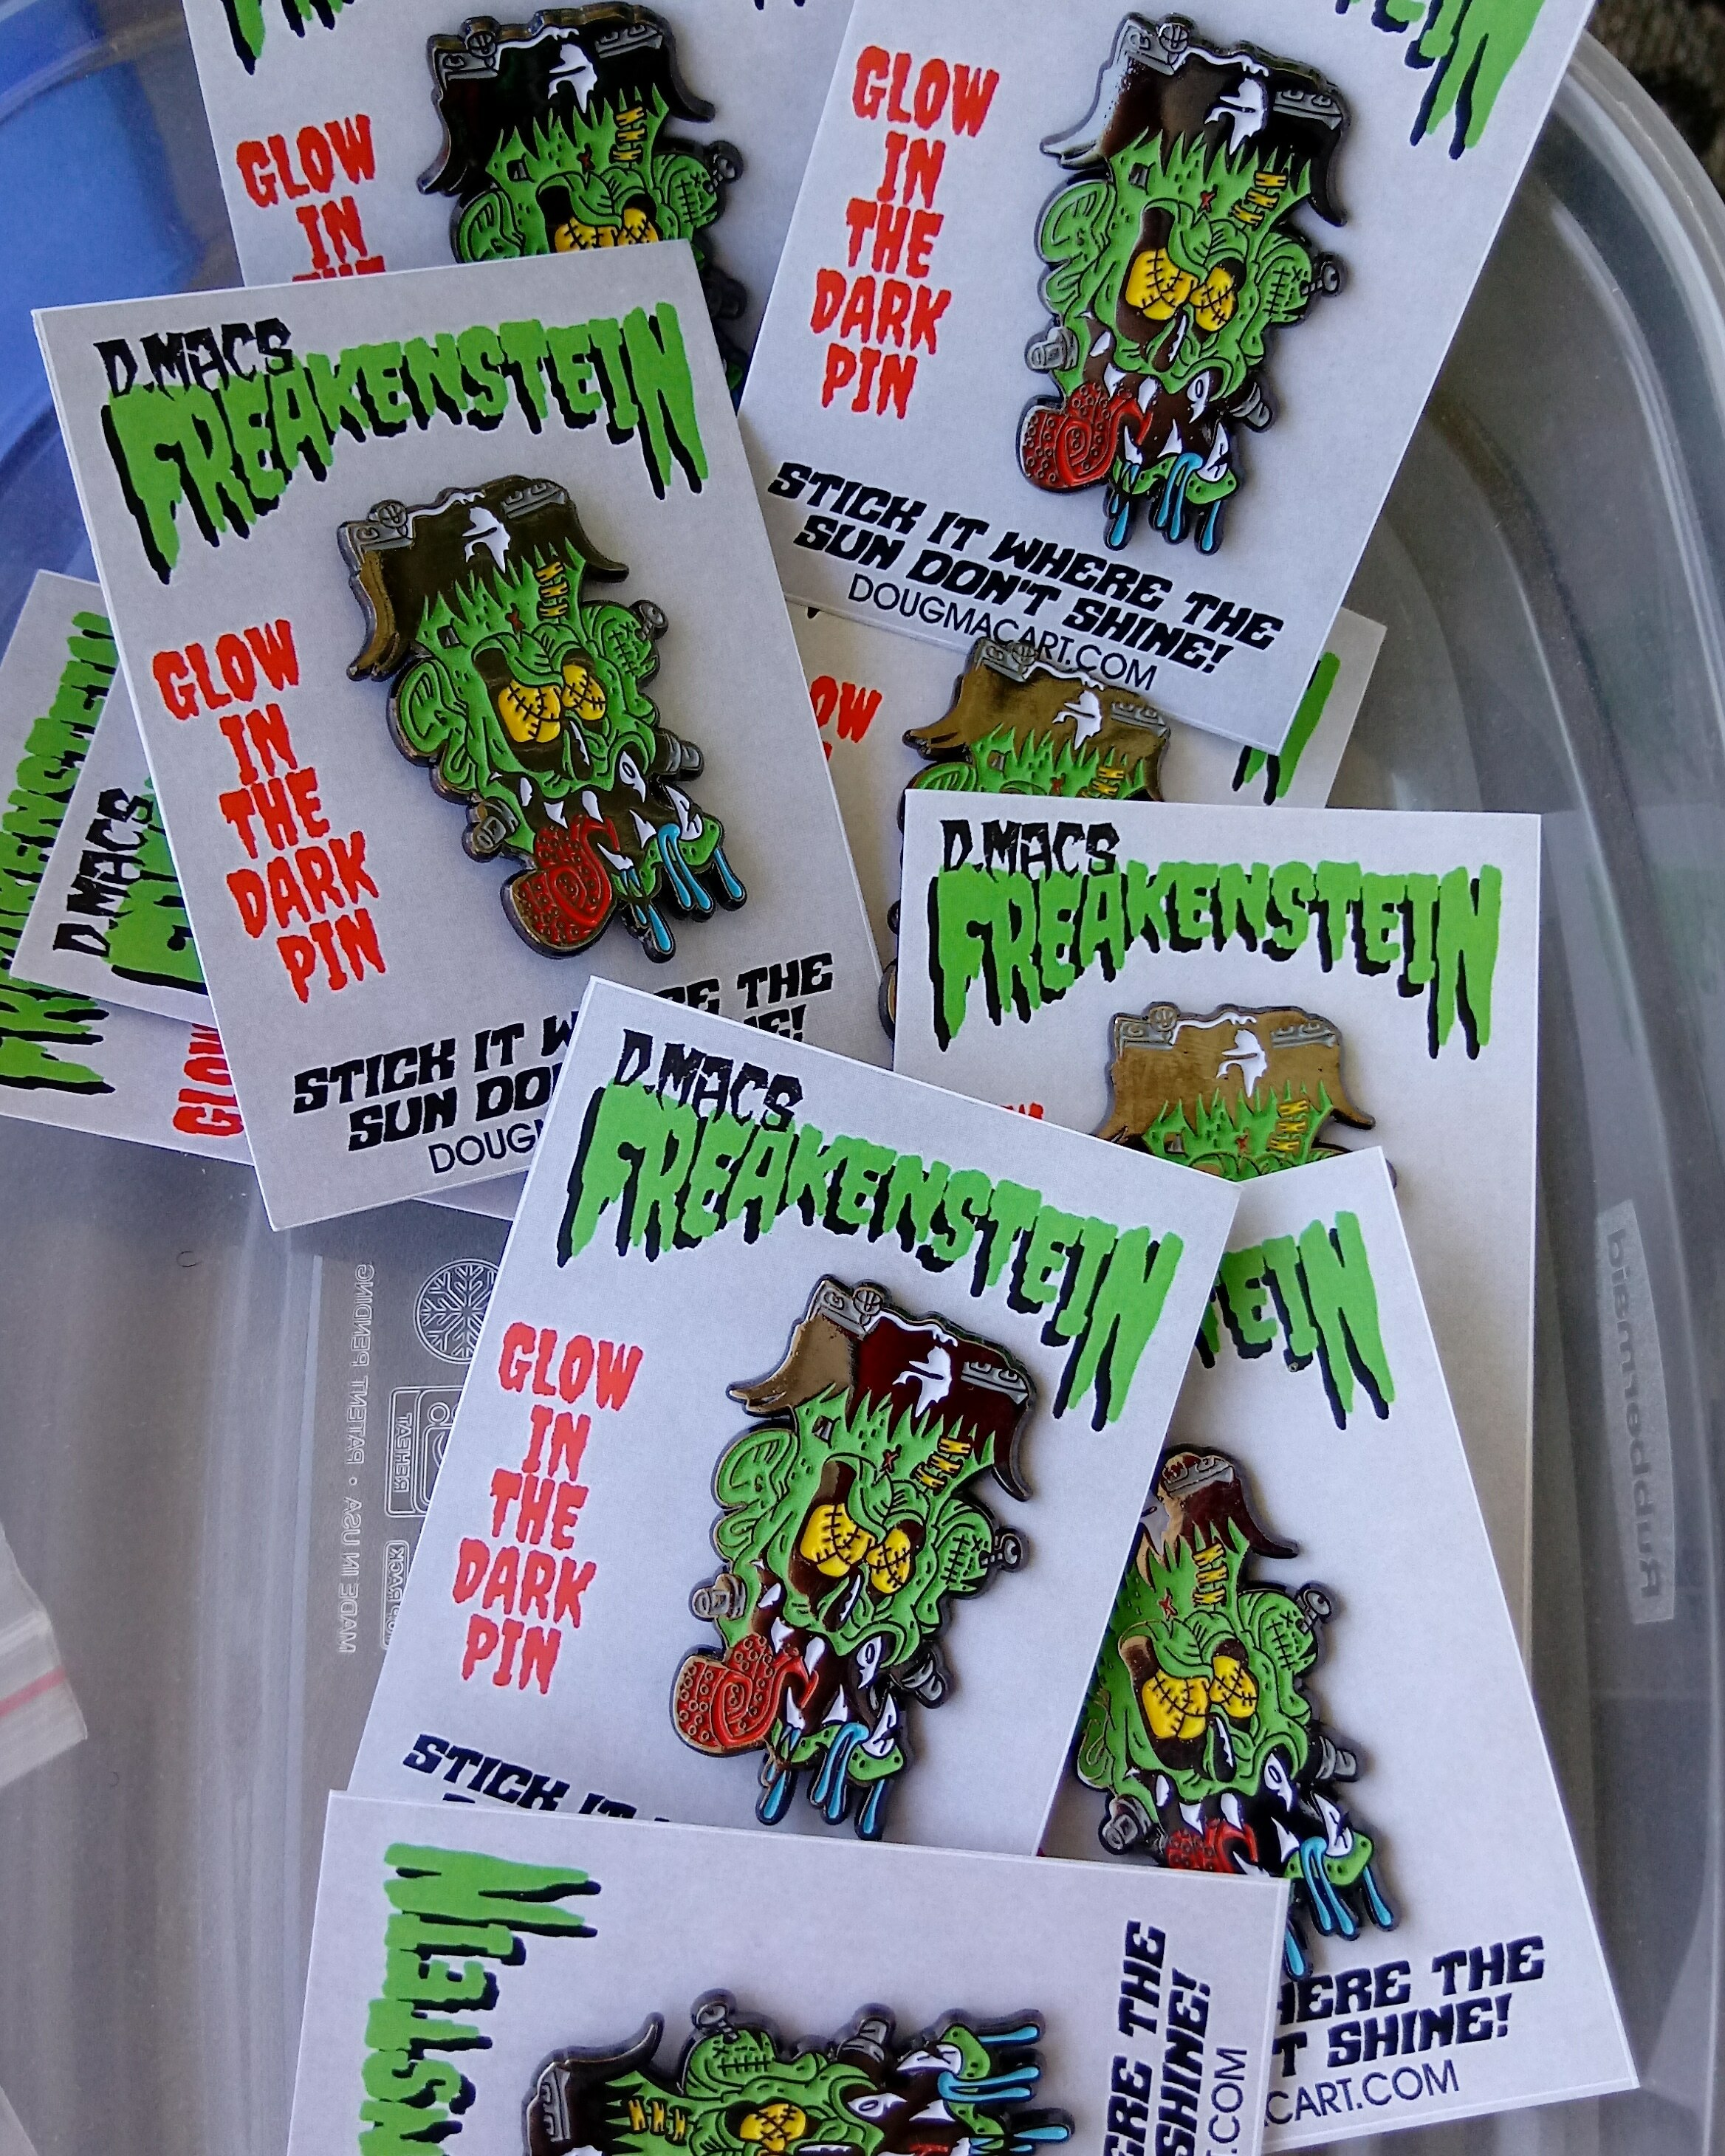 Freakenstein Glow In The Dark Pin 00069